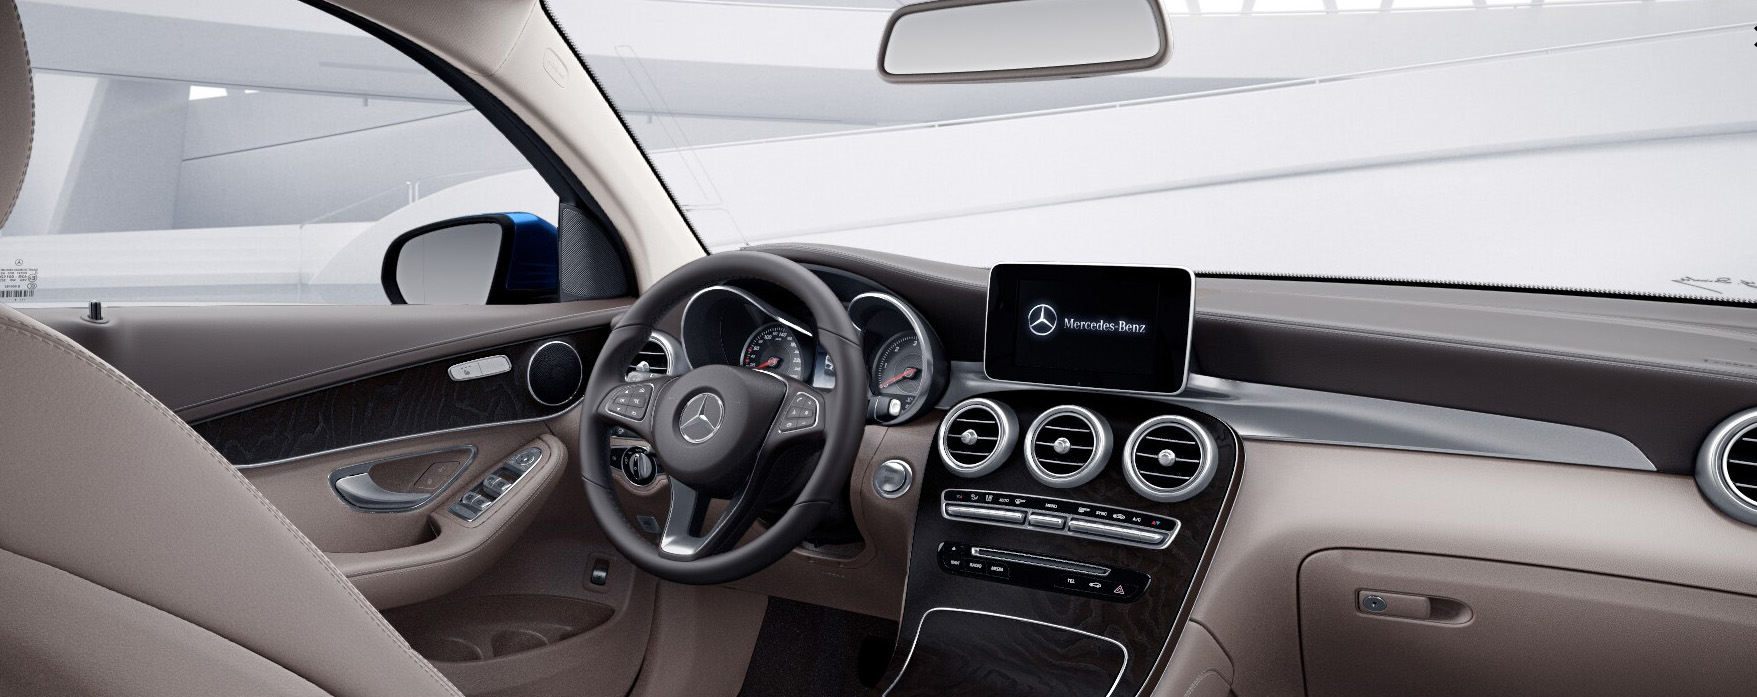 Mercedes-Benz GLC Coupe фото 4